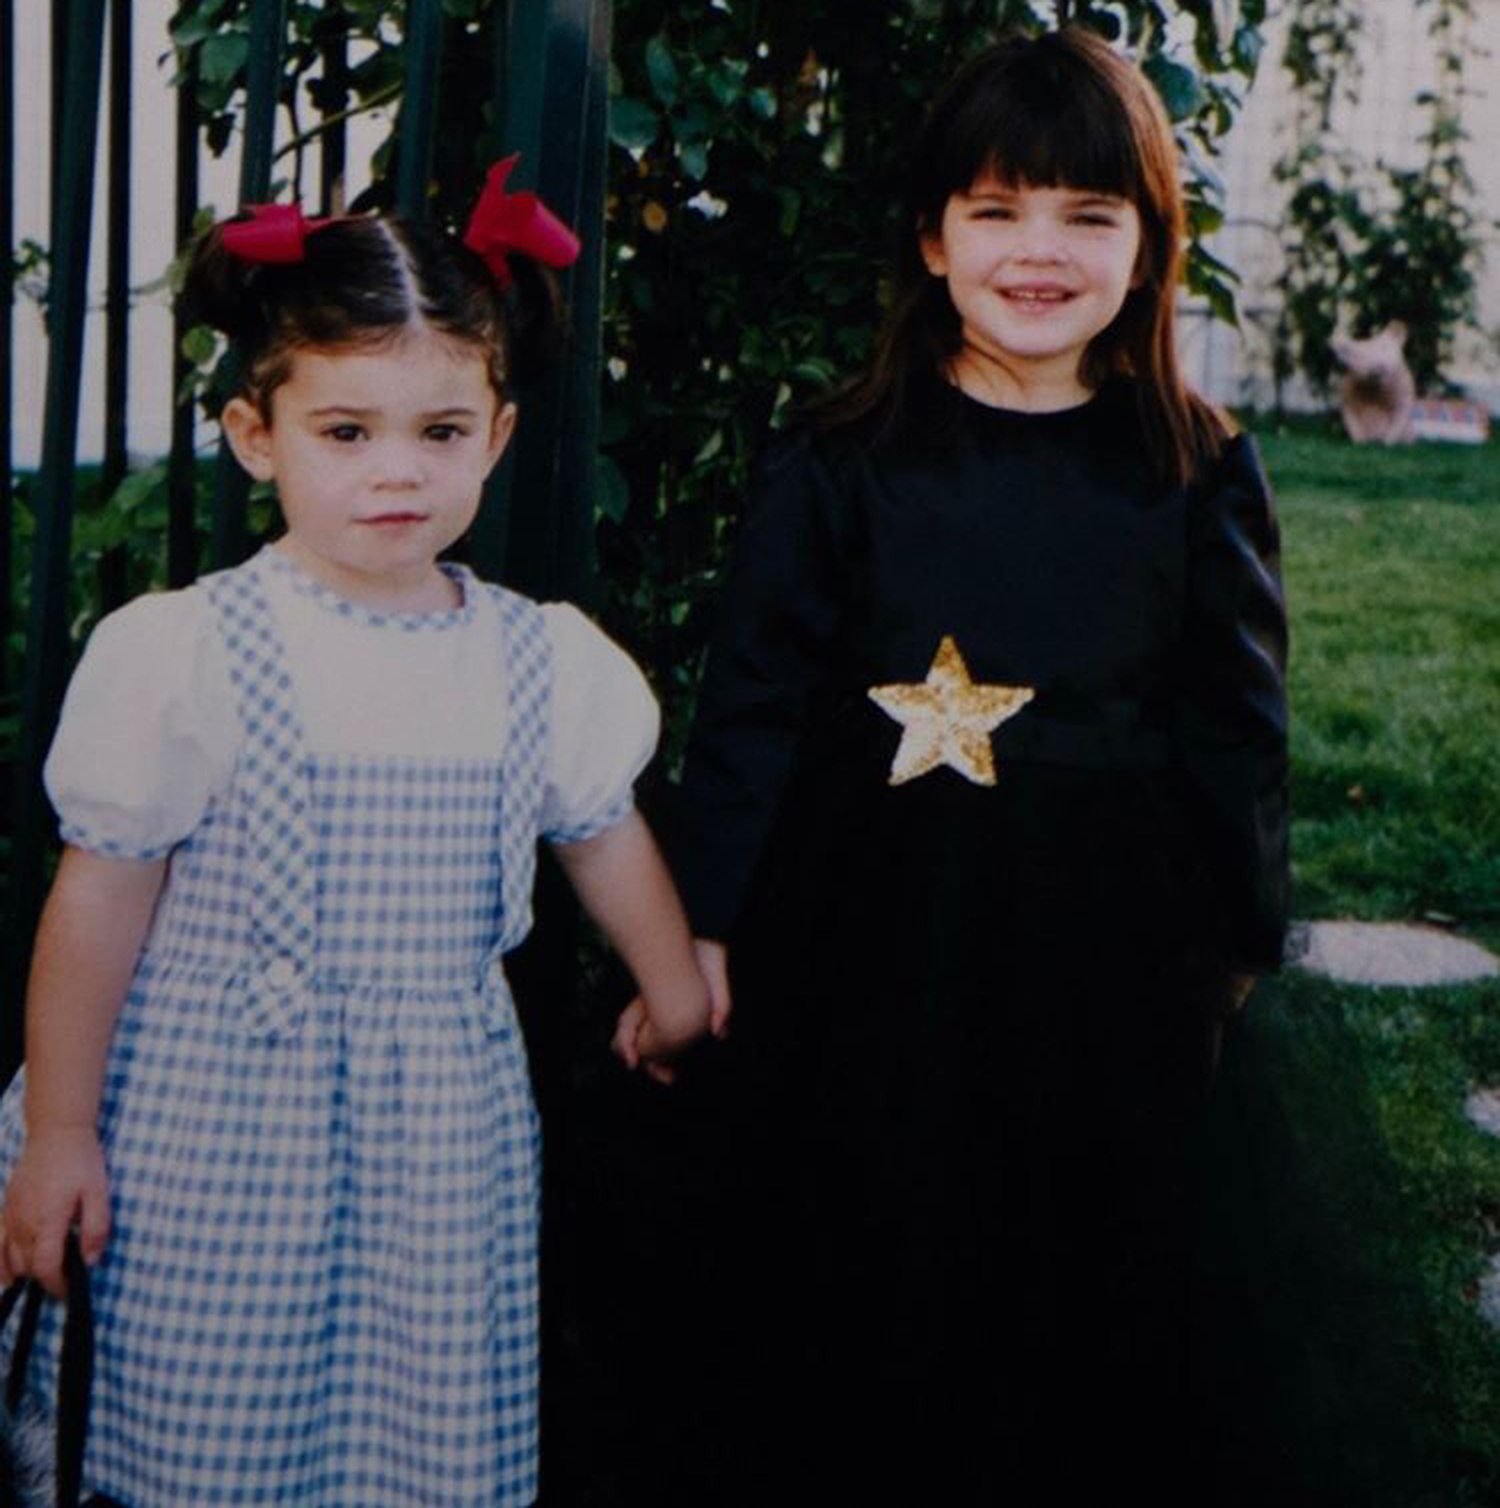 Kylie and Kendall Jenner Halloween throwback